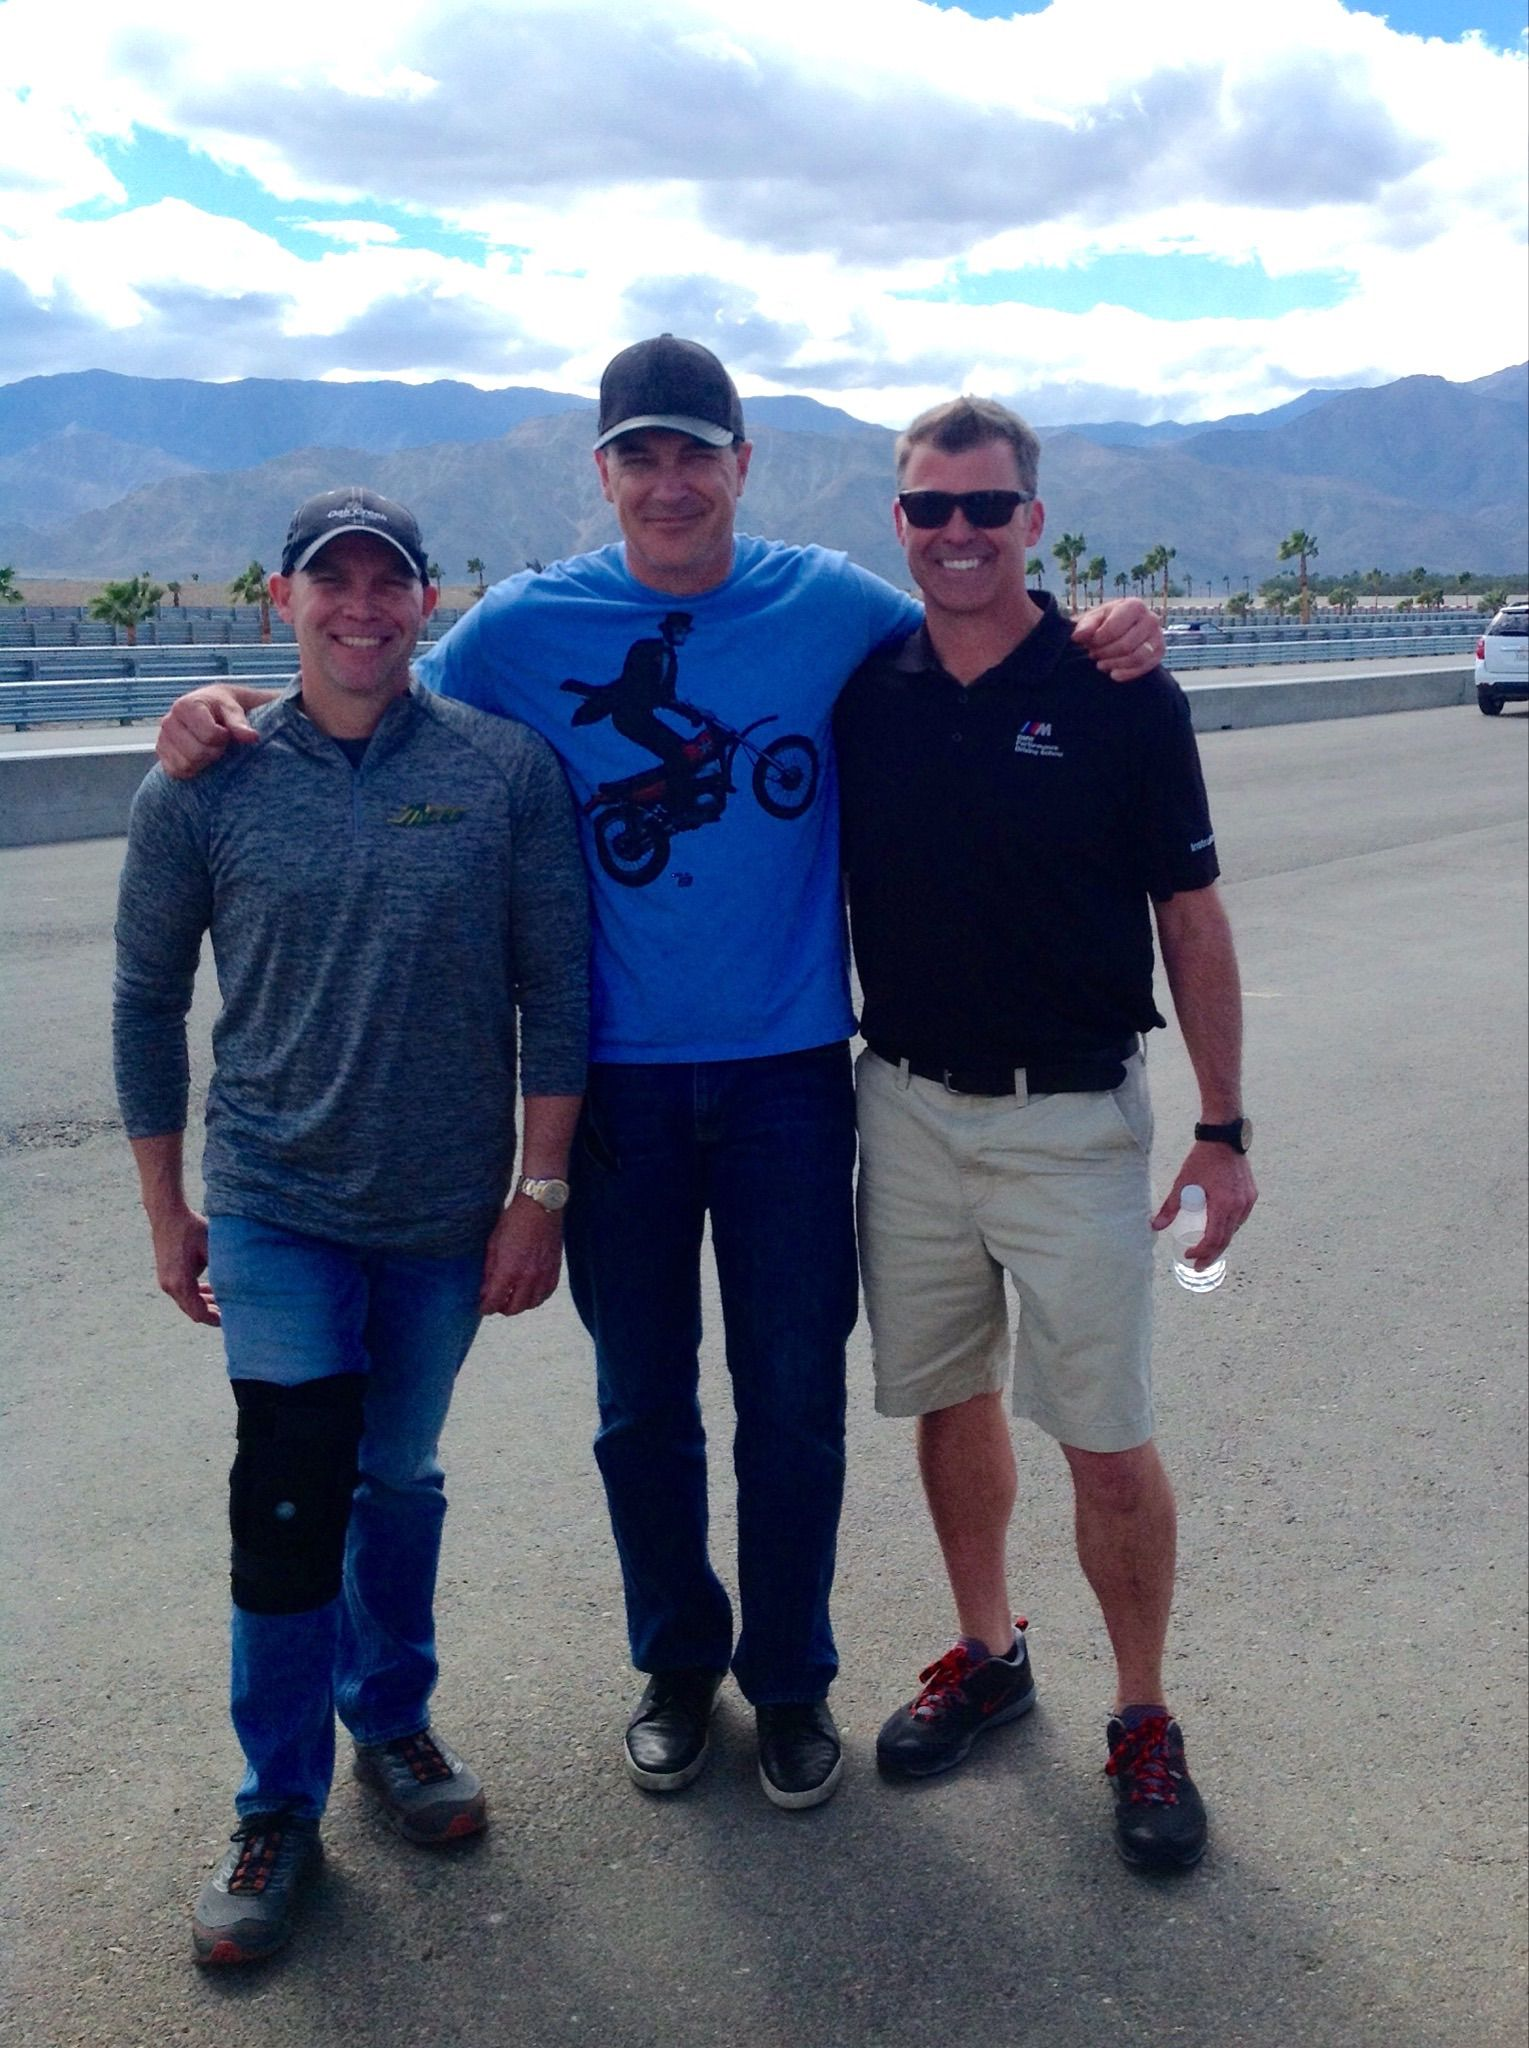 Patrick Warburton experiences the New BMW Performance Center located at The Thermal Club track in Thermal, CA!